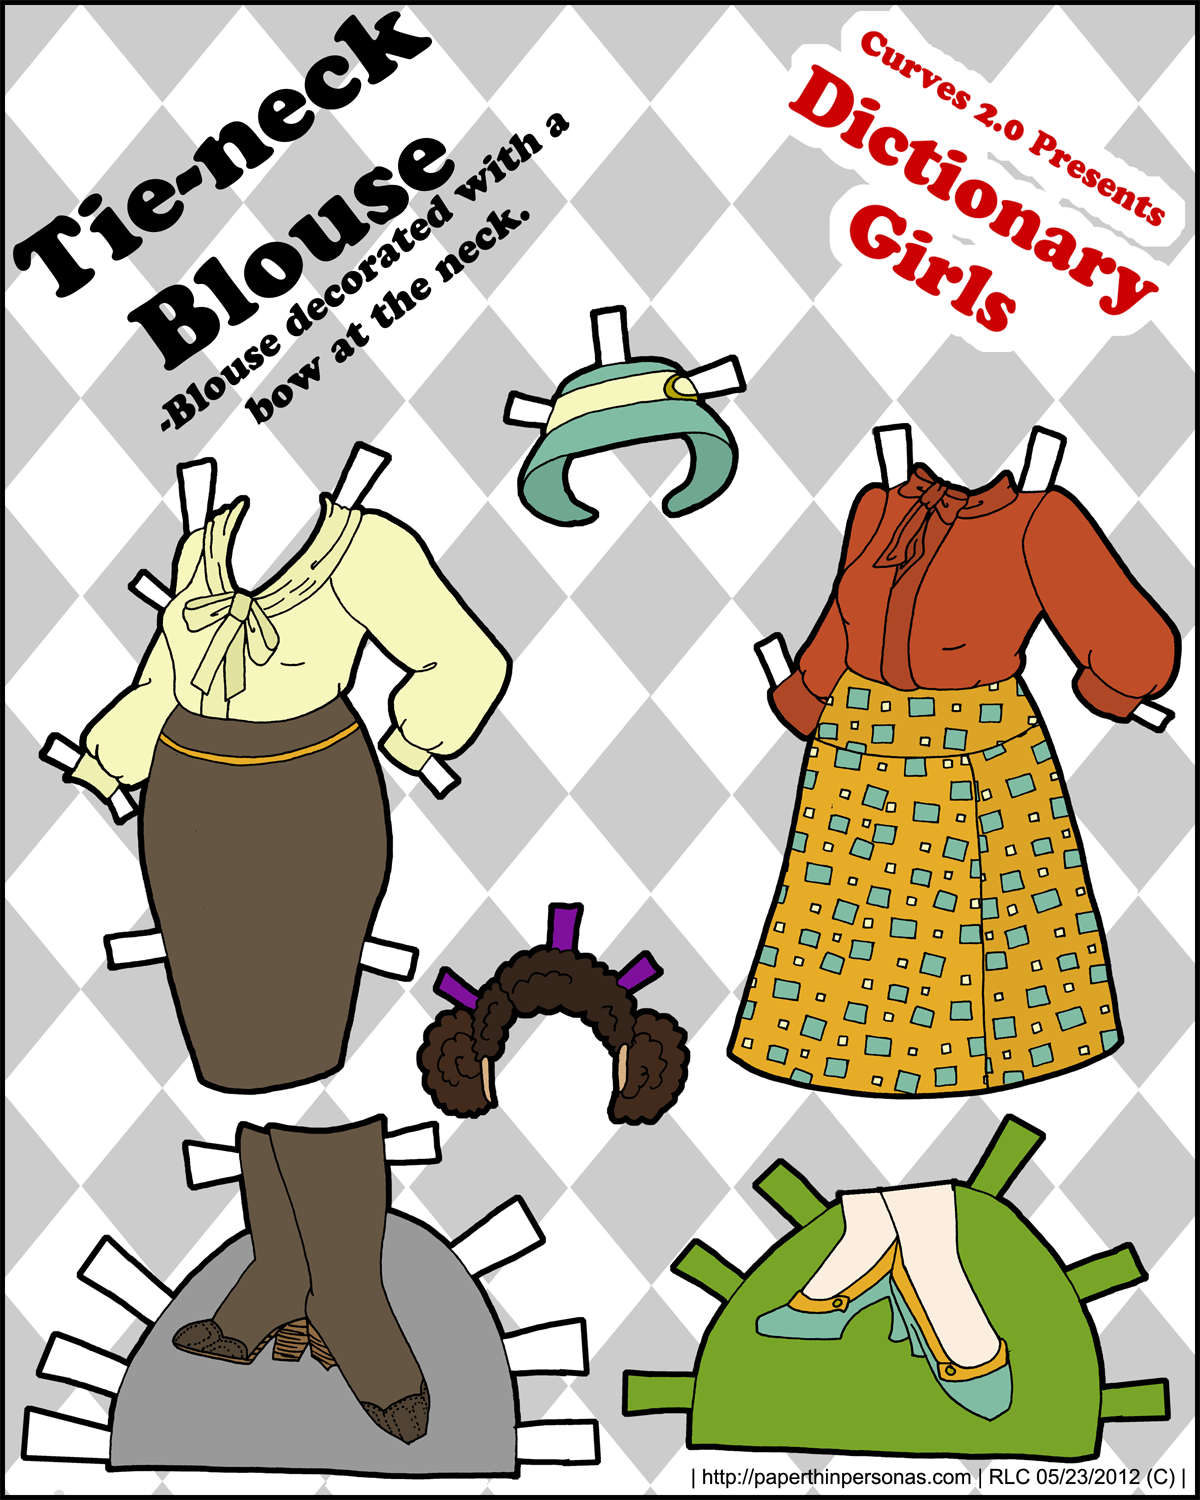 A pair of 1970's inspired tie neck blouses with skirts for the Dictionary Girls series of full figured